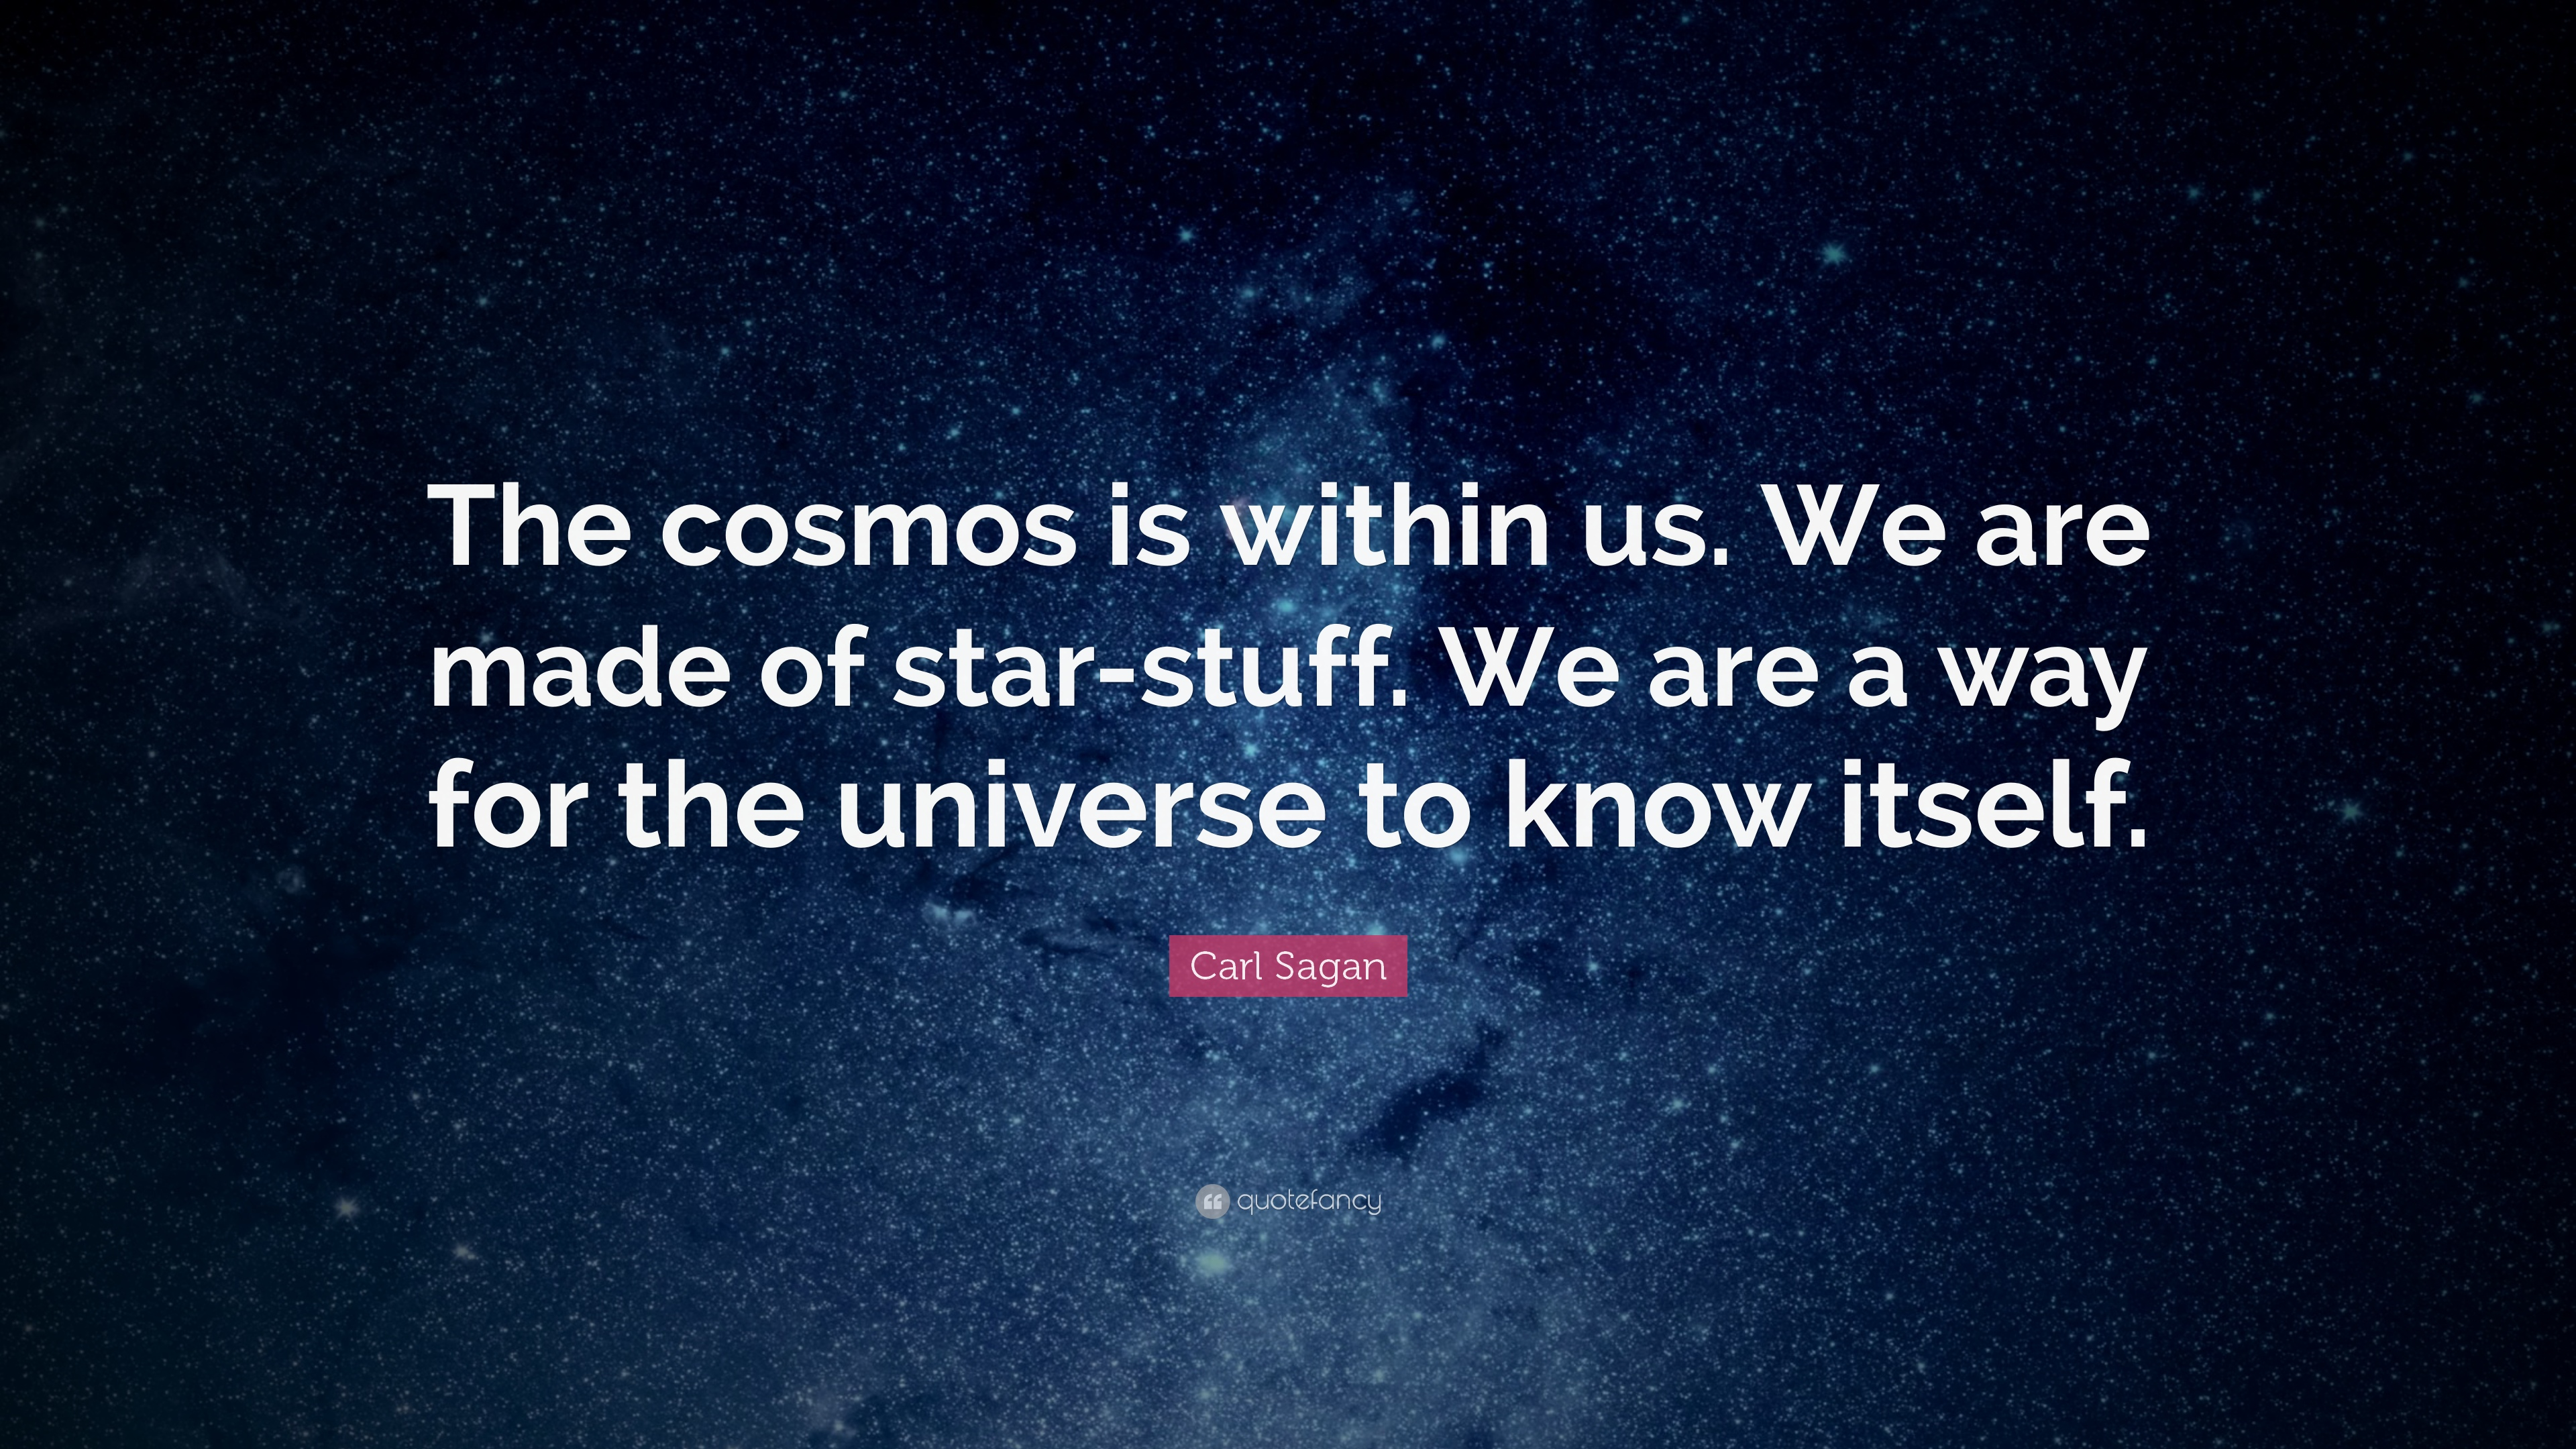 Studying Quotes Wallpaper Carl Sagan Quote The Cosmos Is Within Us We Are Made Of